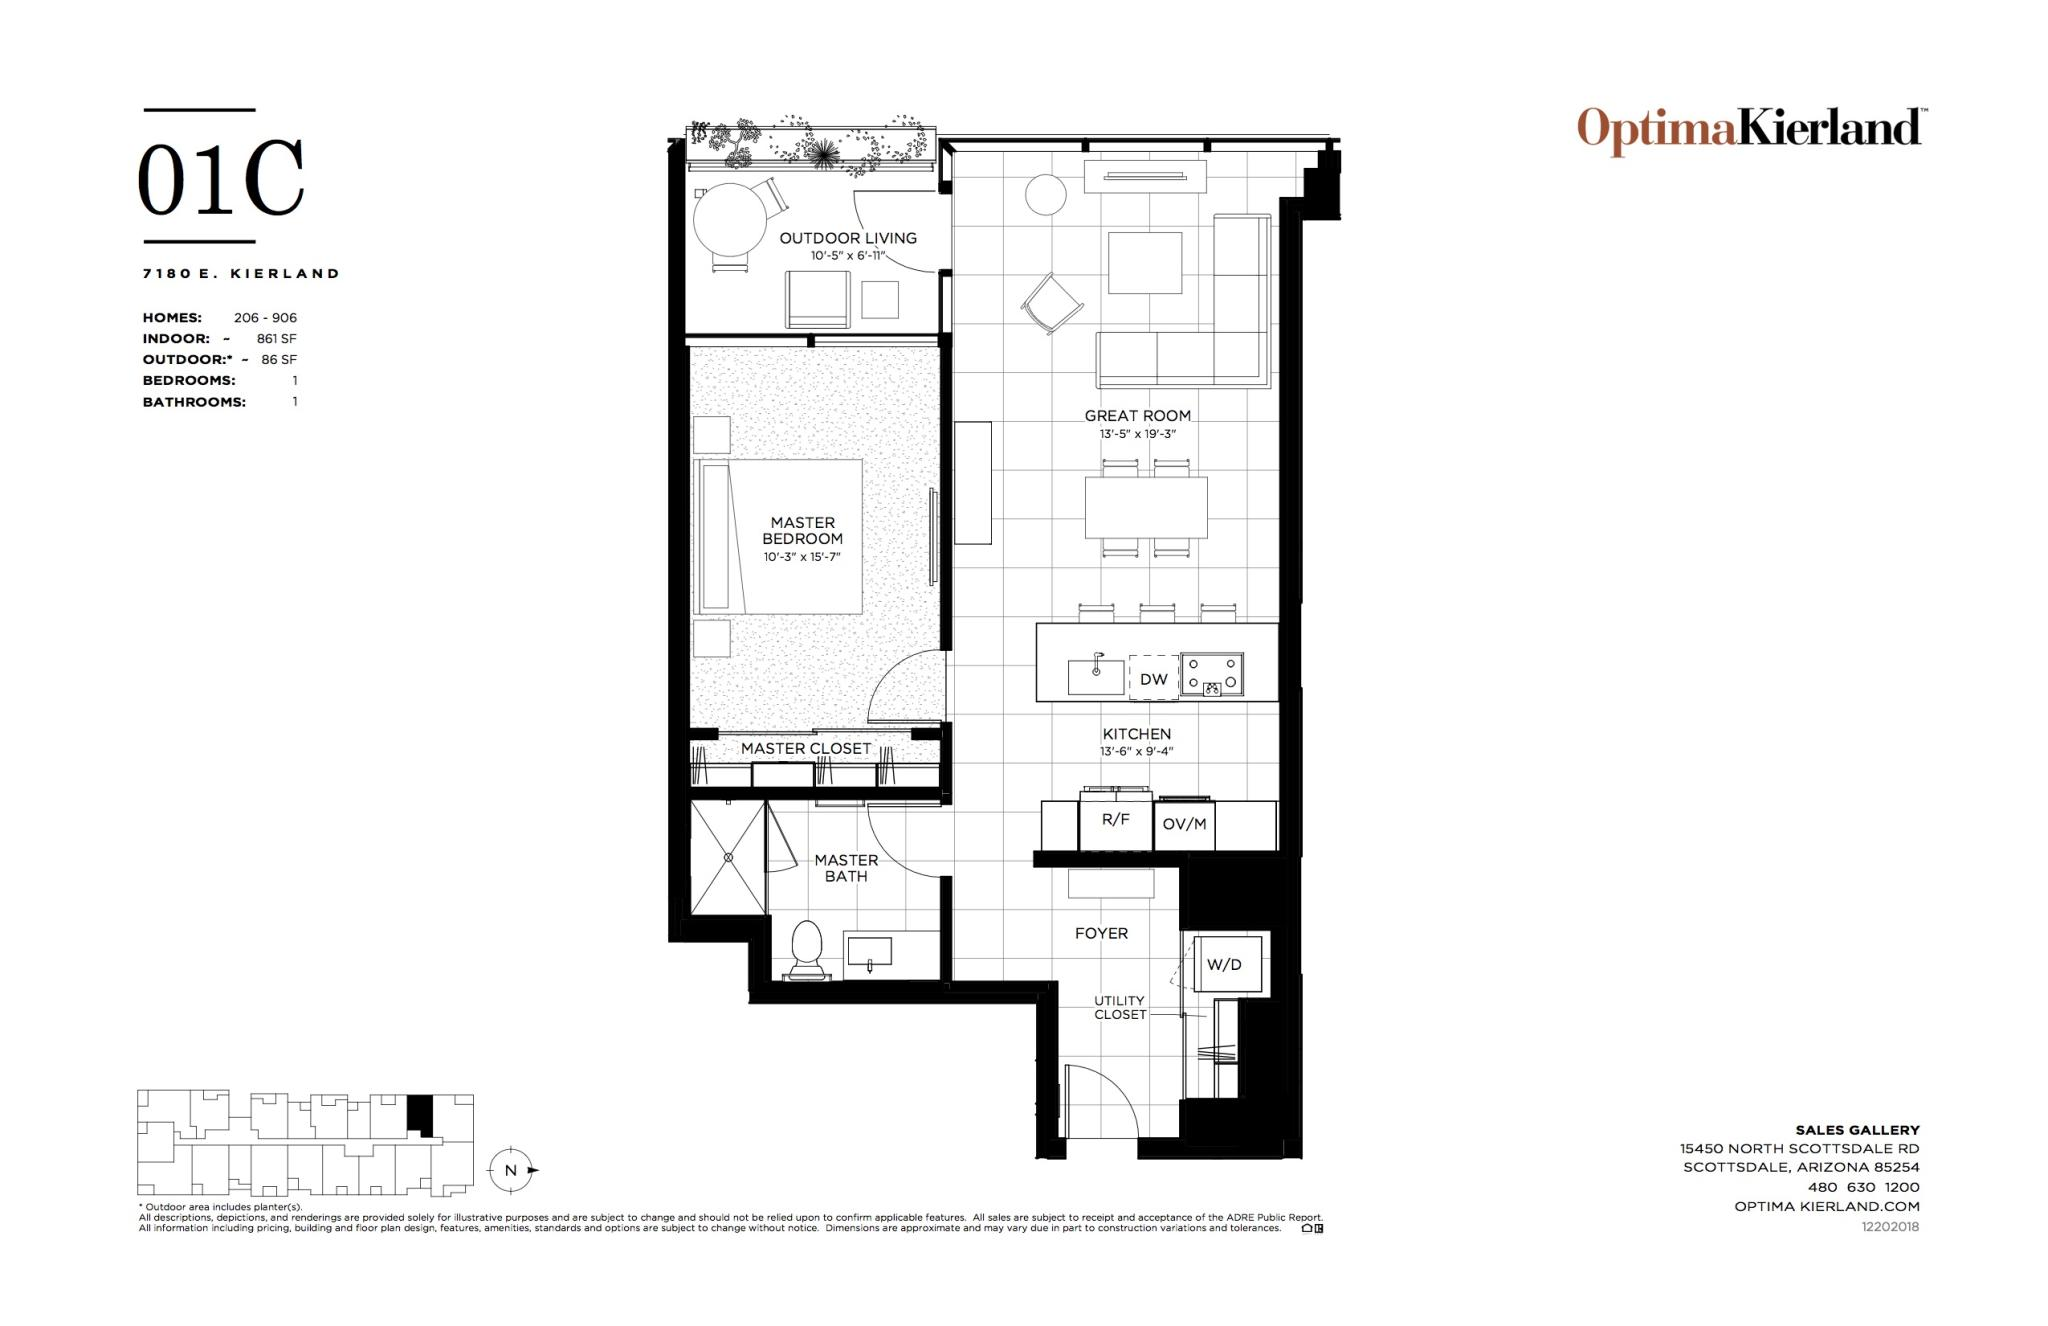 01C Plan, Scottsdale, AZ 85254 - 1 Bed, 1 Bath Condo | Trulia on house plans with wrap-around porches, house plans with electrical, house plans country living, house plans with butler's pantry, house plans with security, house plans with dining room, homes with outdoor living, house plans with landscaping, house plans with flowers, house plans with design, house plans with attached barn, house plans with side entry garage, house plans with secret passageways, house plans for homes on pilings, swimming pools with outdoor living, house plans with open floor plans, house plans under 800 square feet, house plans with plumbing, small house plans southern living, house with indoor outdoor pool,